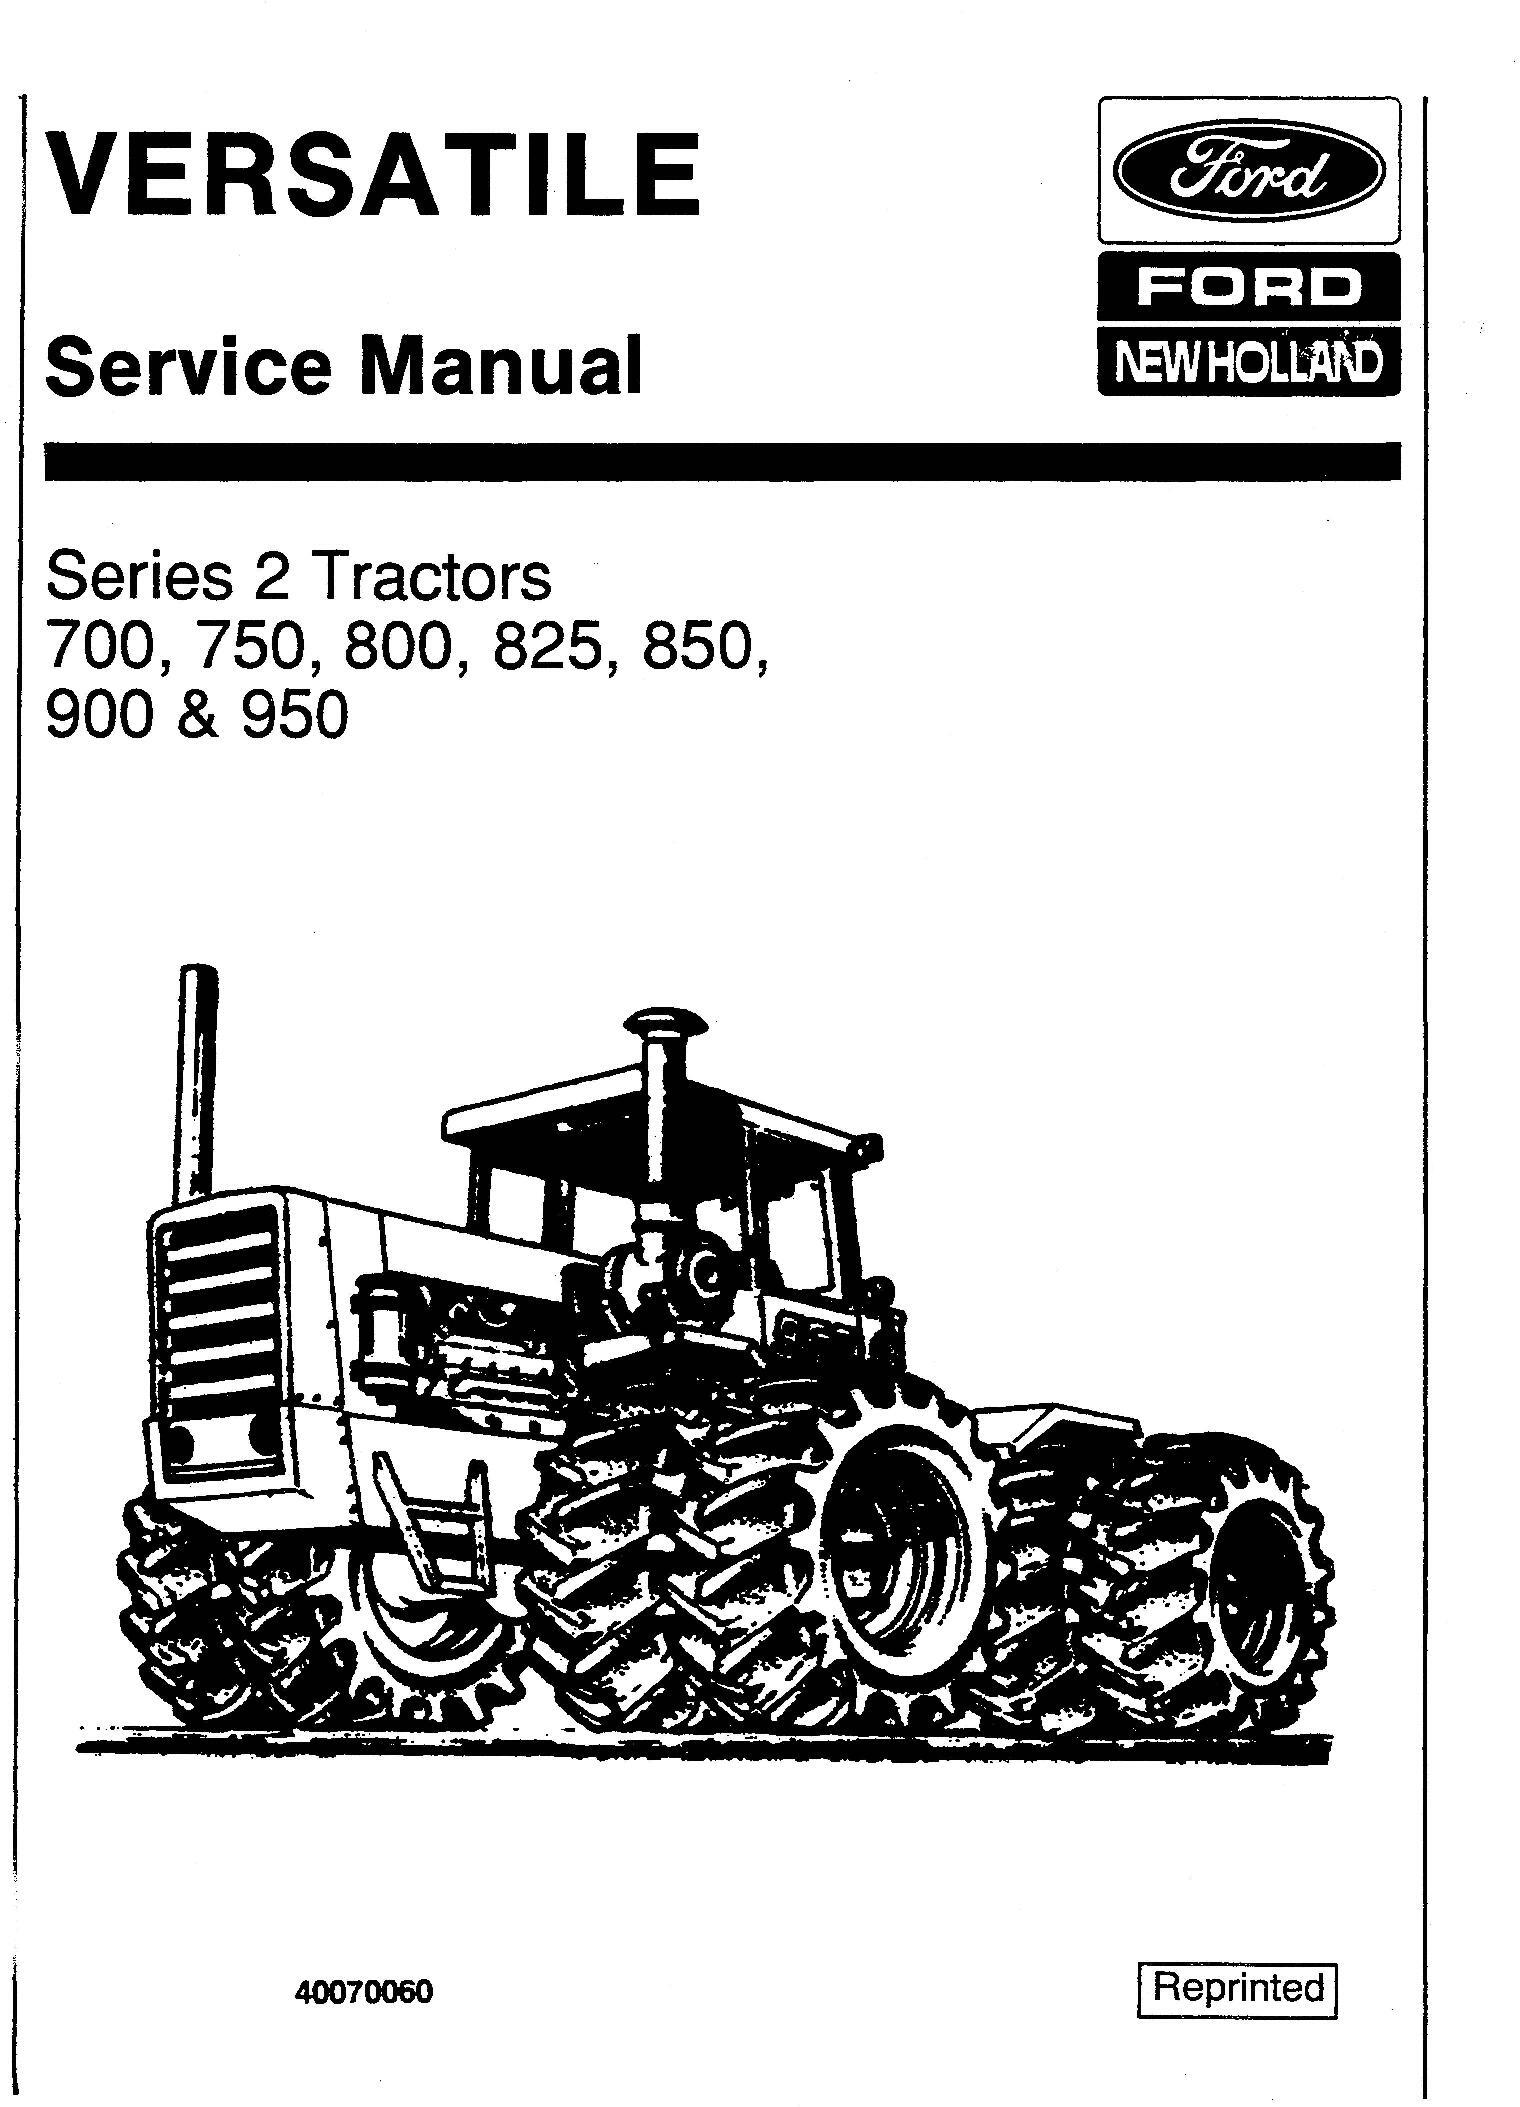 Ford Versatile 700, 750, 800, 825, 850, 900, 950 4WD